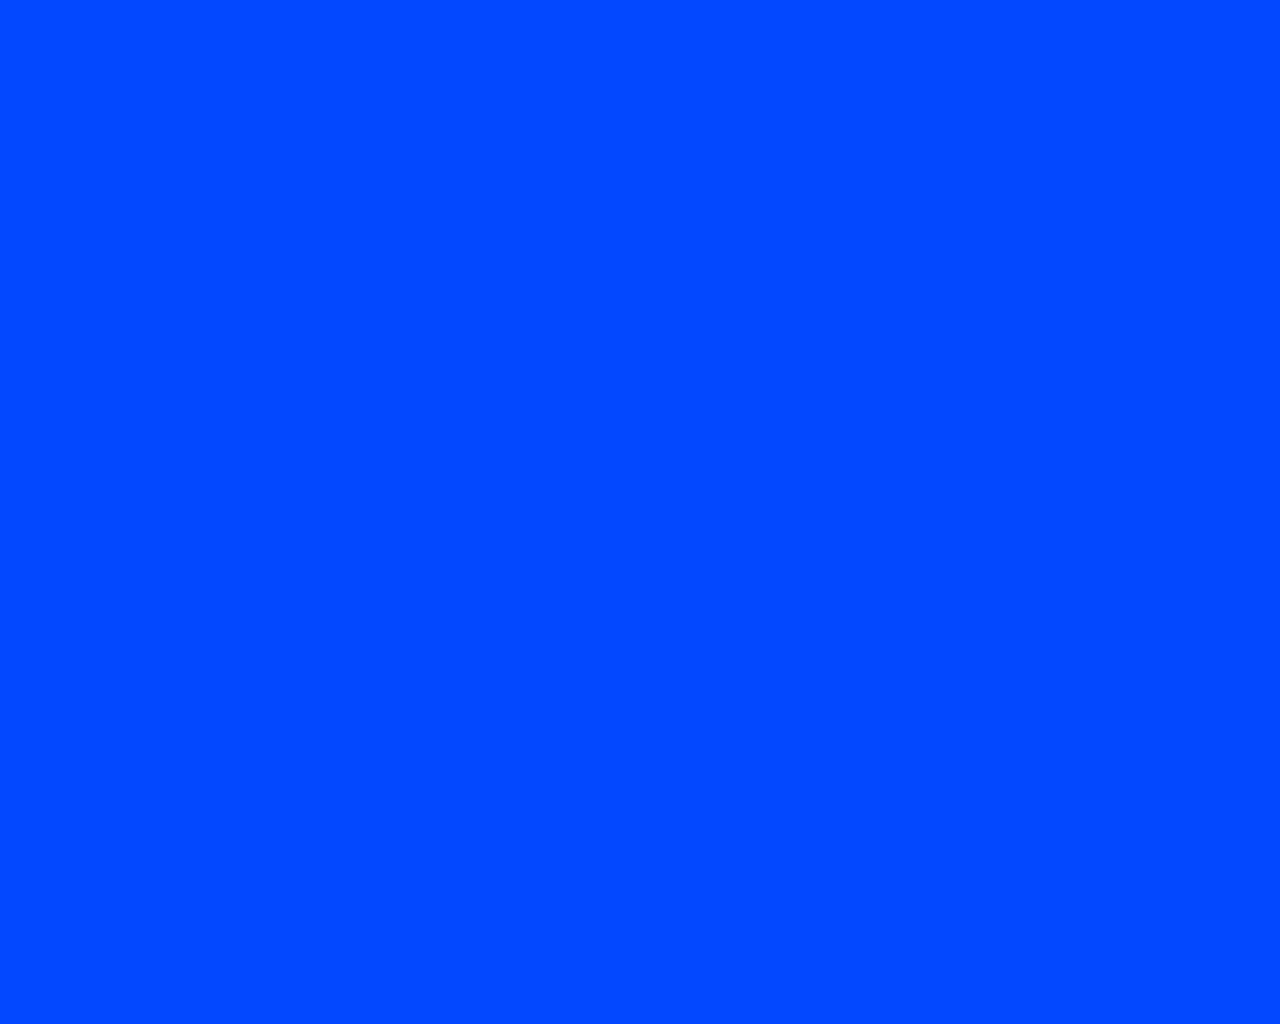 1280x1024 Blue RYB Solid Color Background